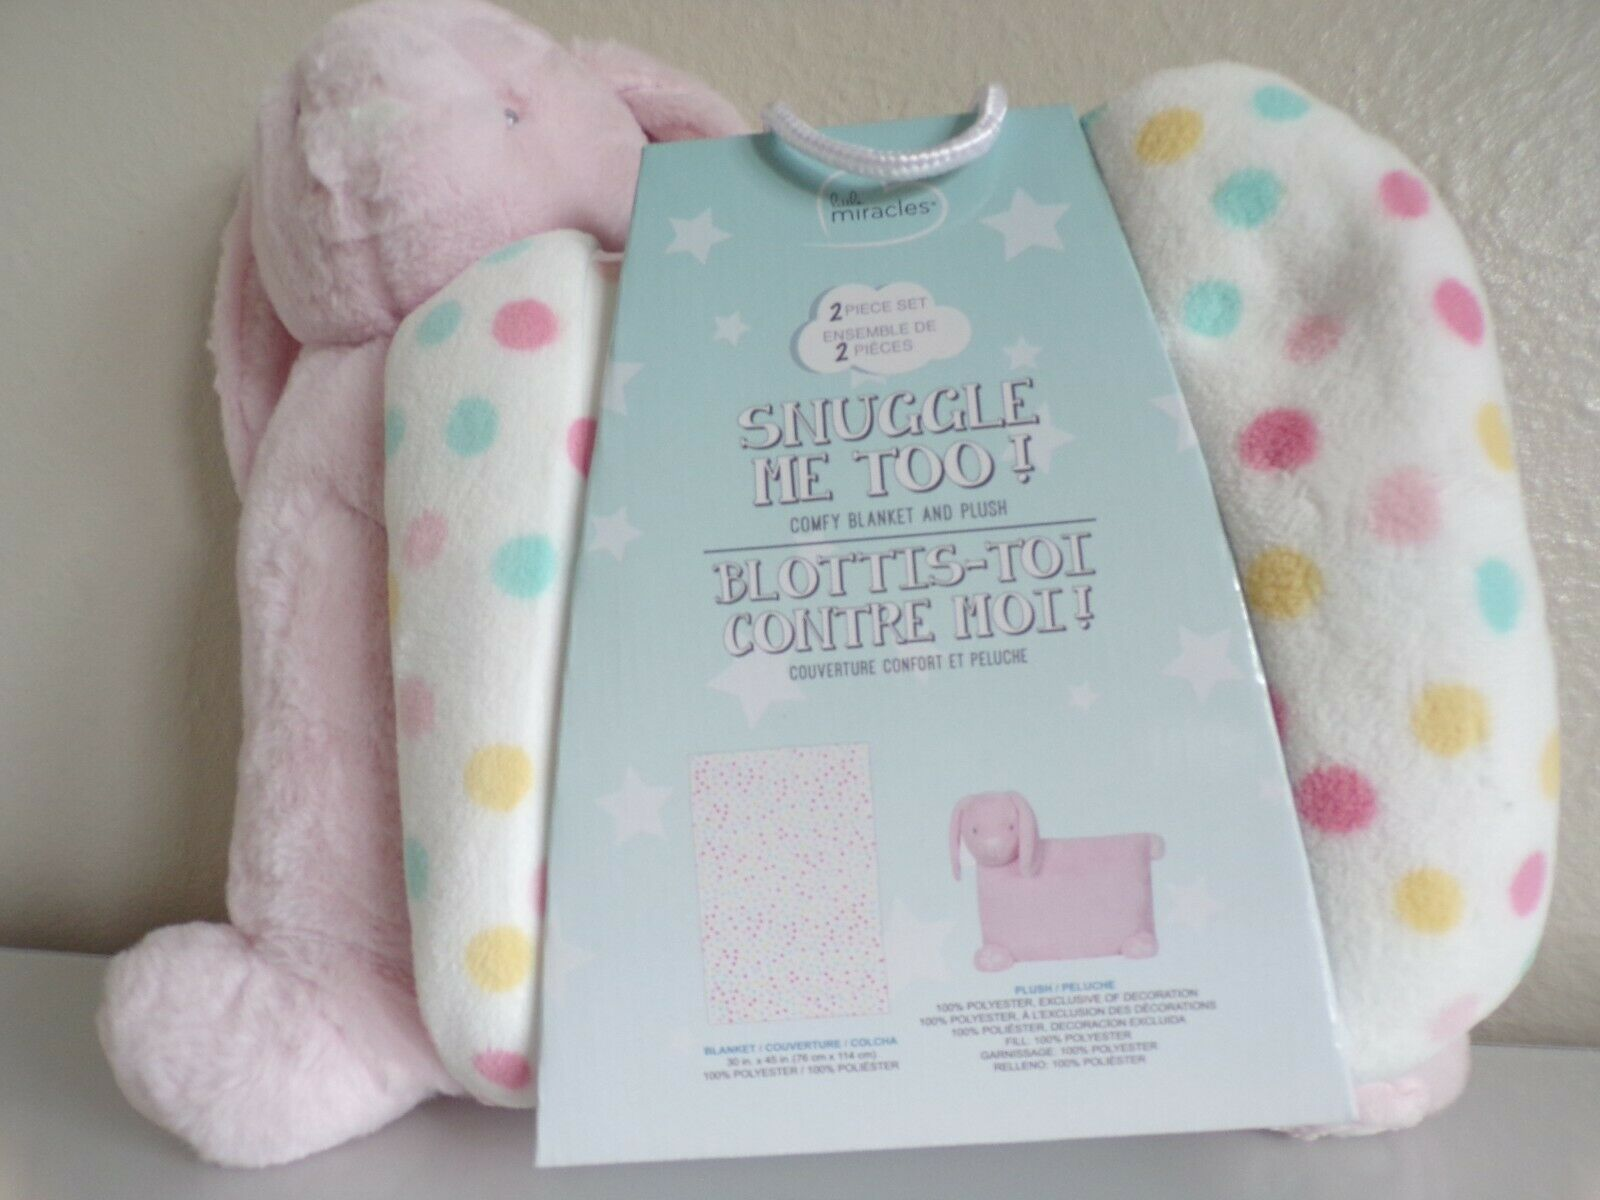 Little Miracles Sweet Snuggles Baby Security Blanket Puppy Dog Lovey Set Costco For Sale Ebay